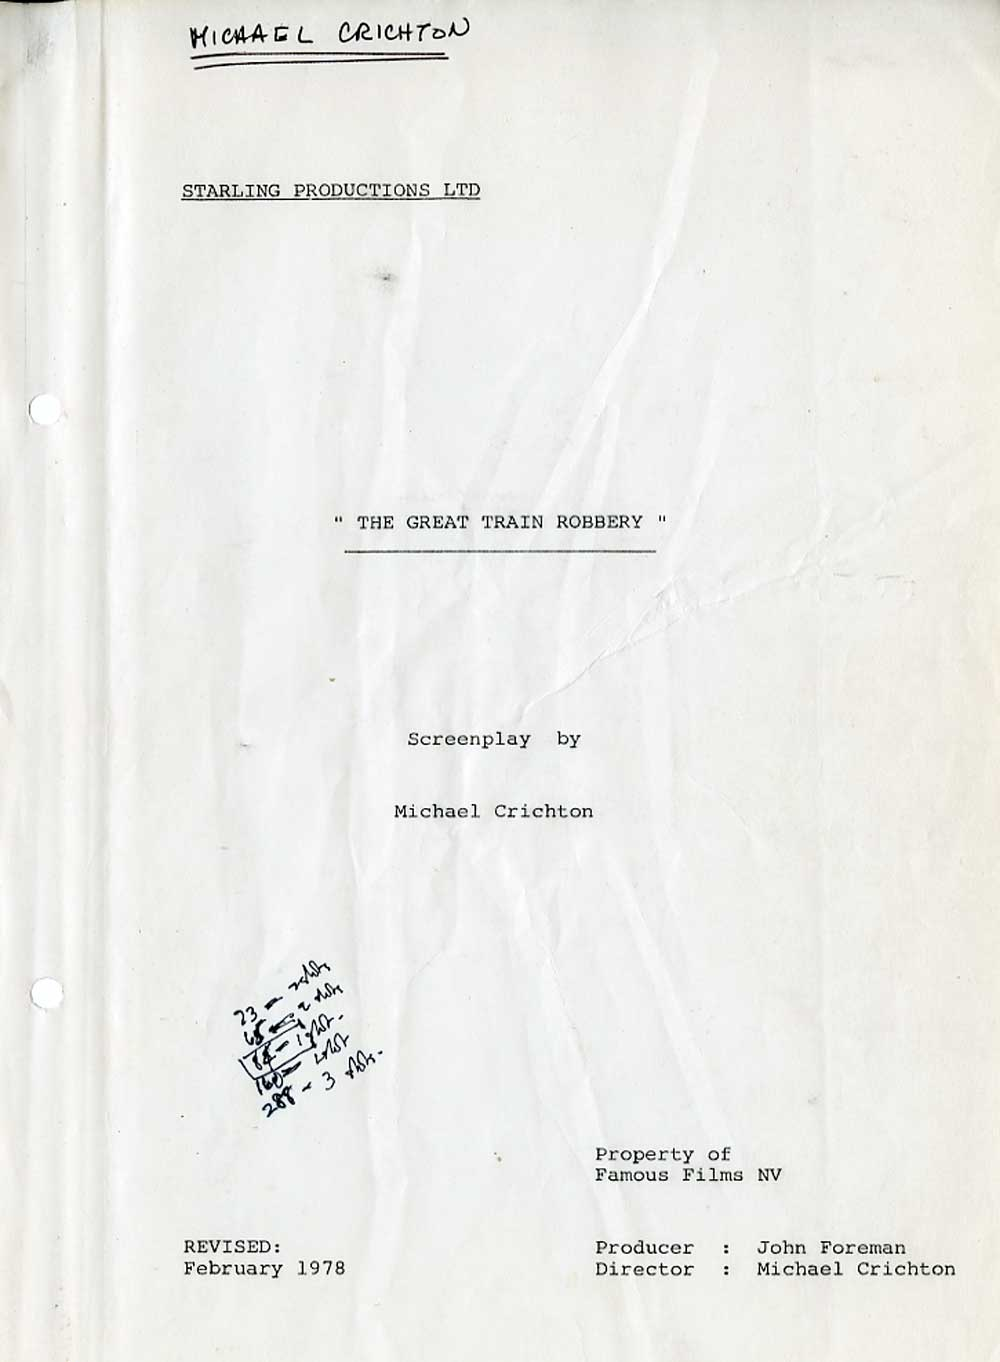 The Great Train Robbery Shooting Script Cover Page